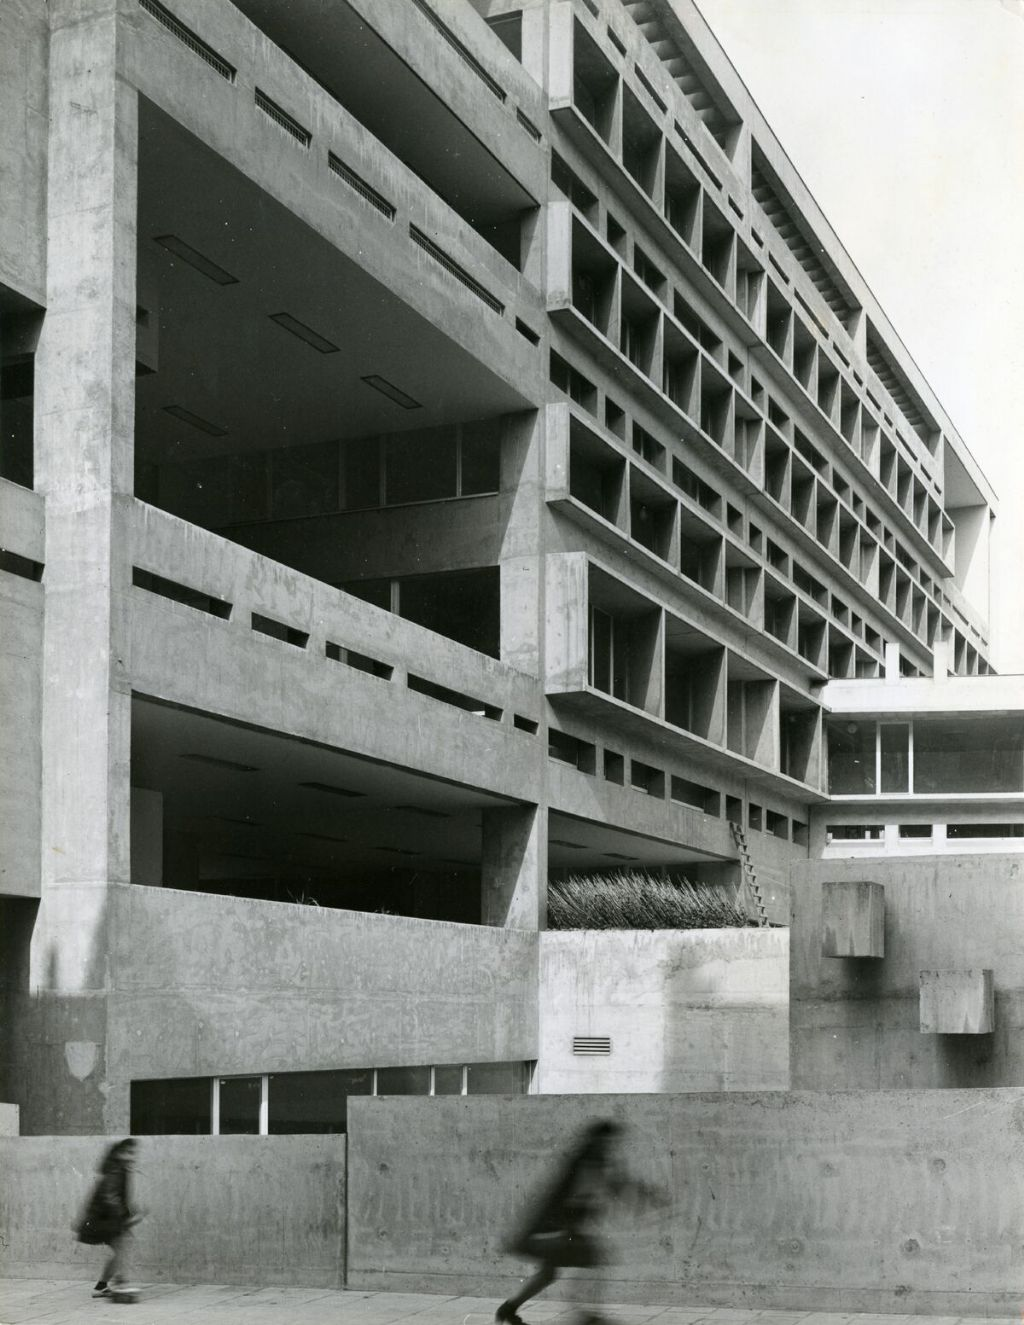 Peter Pan school in Sint-Gillis (Brussel), 1956, Léon Stynen i.s.m. P. De Meyer